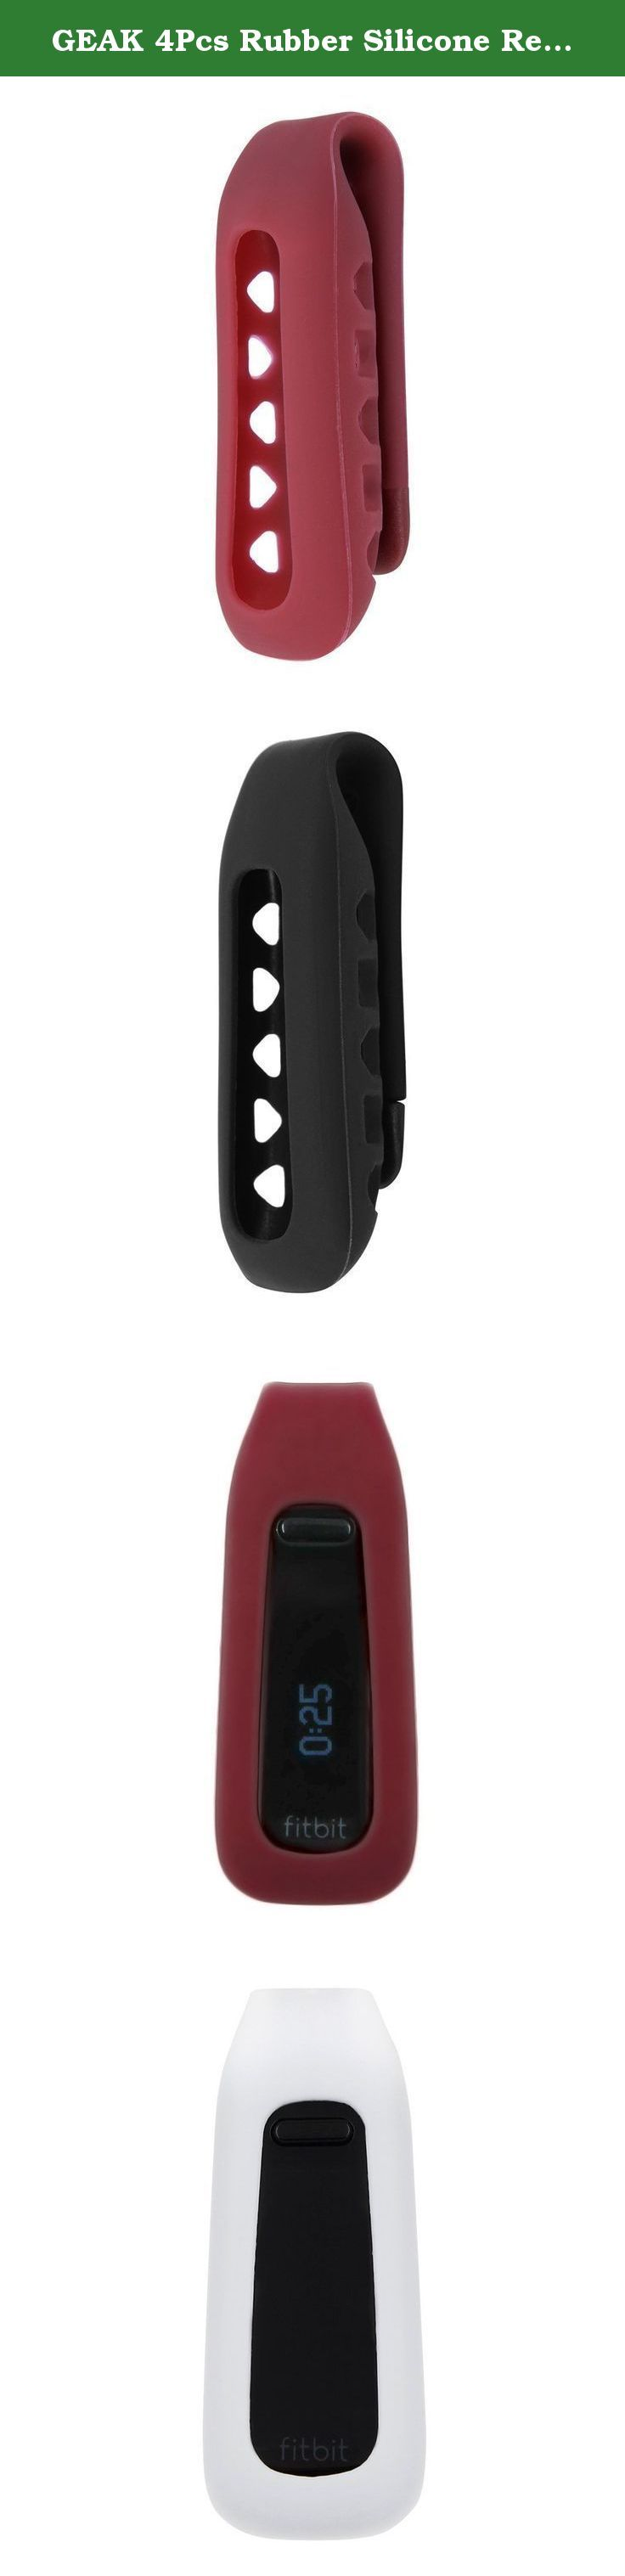 GEAK 4Pcs Rubber Silicone Replace Wearable Fitbit One Clip Holder Converter Case Waterproof Replacement Colorful Wristband. Product Description: fitbit one/fitbit one accessories/fitbit one accessories bracelet/fitbit one accessories clip/fitbit one accessories tory burch/fitbit one accessories wristbands/fitbit one activity tracker/fitbit one ankle/fitbit one arm band/fitbit one armband/fitbit one assesories/fitbit one band/fitbit one battery/fitbit one belt clip/fitbit one black/fitbit…